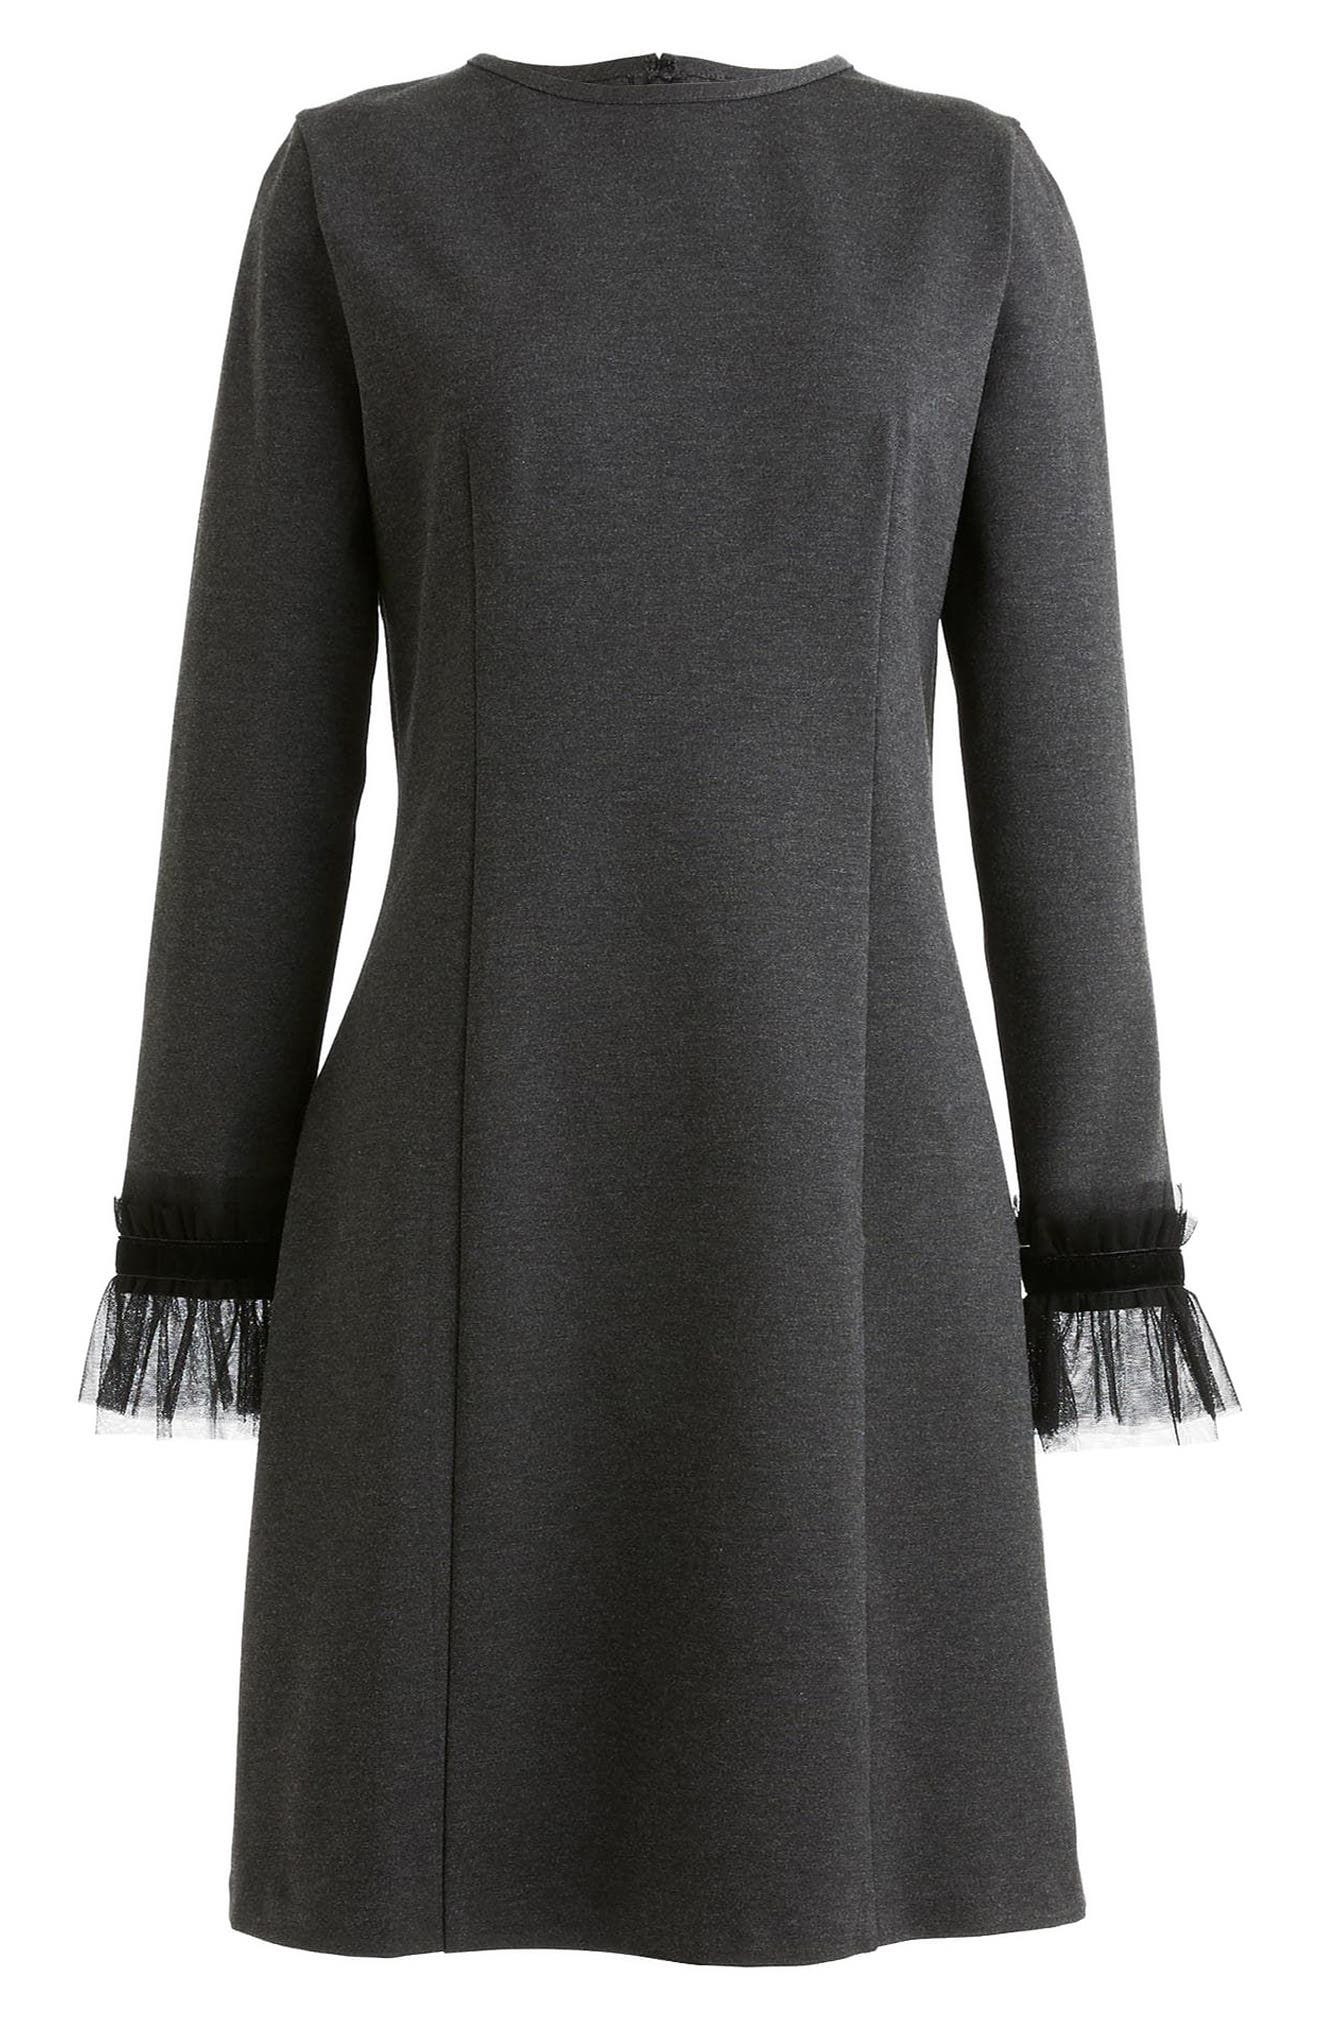 J.Crew Tulle Trim Long Sleeve Sheath Dress,                             Alternate thumbnail 3, color,                             Heather Grey